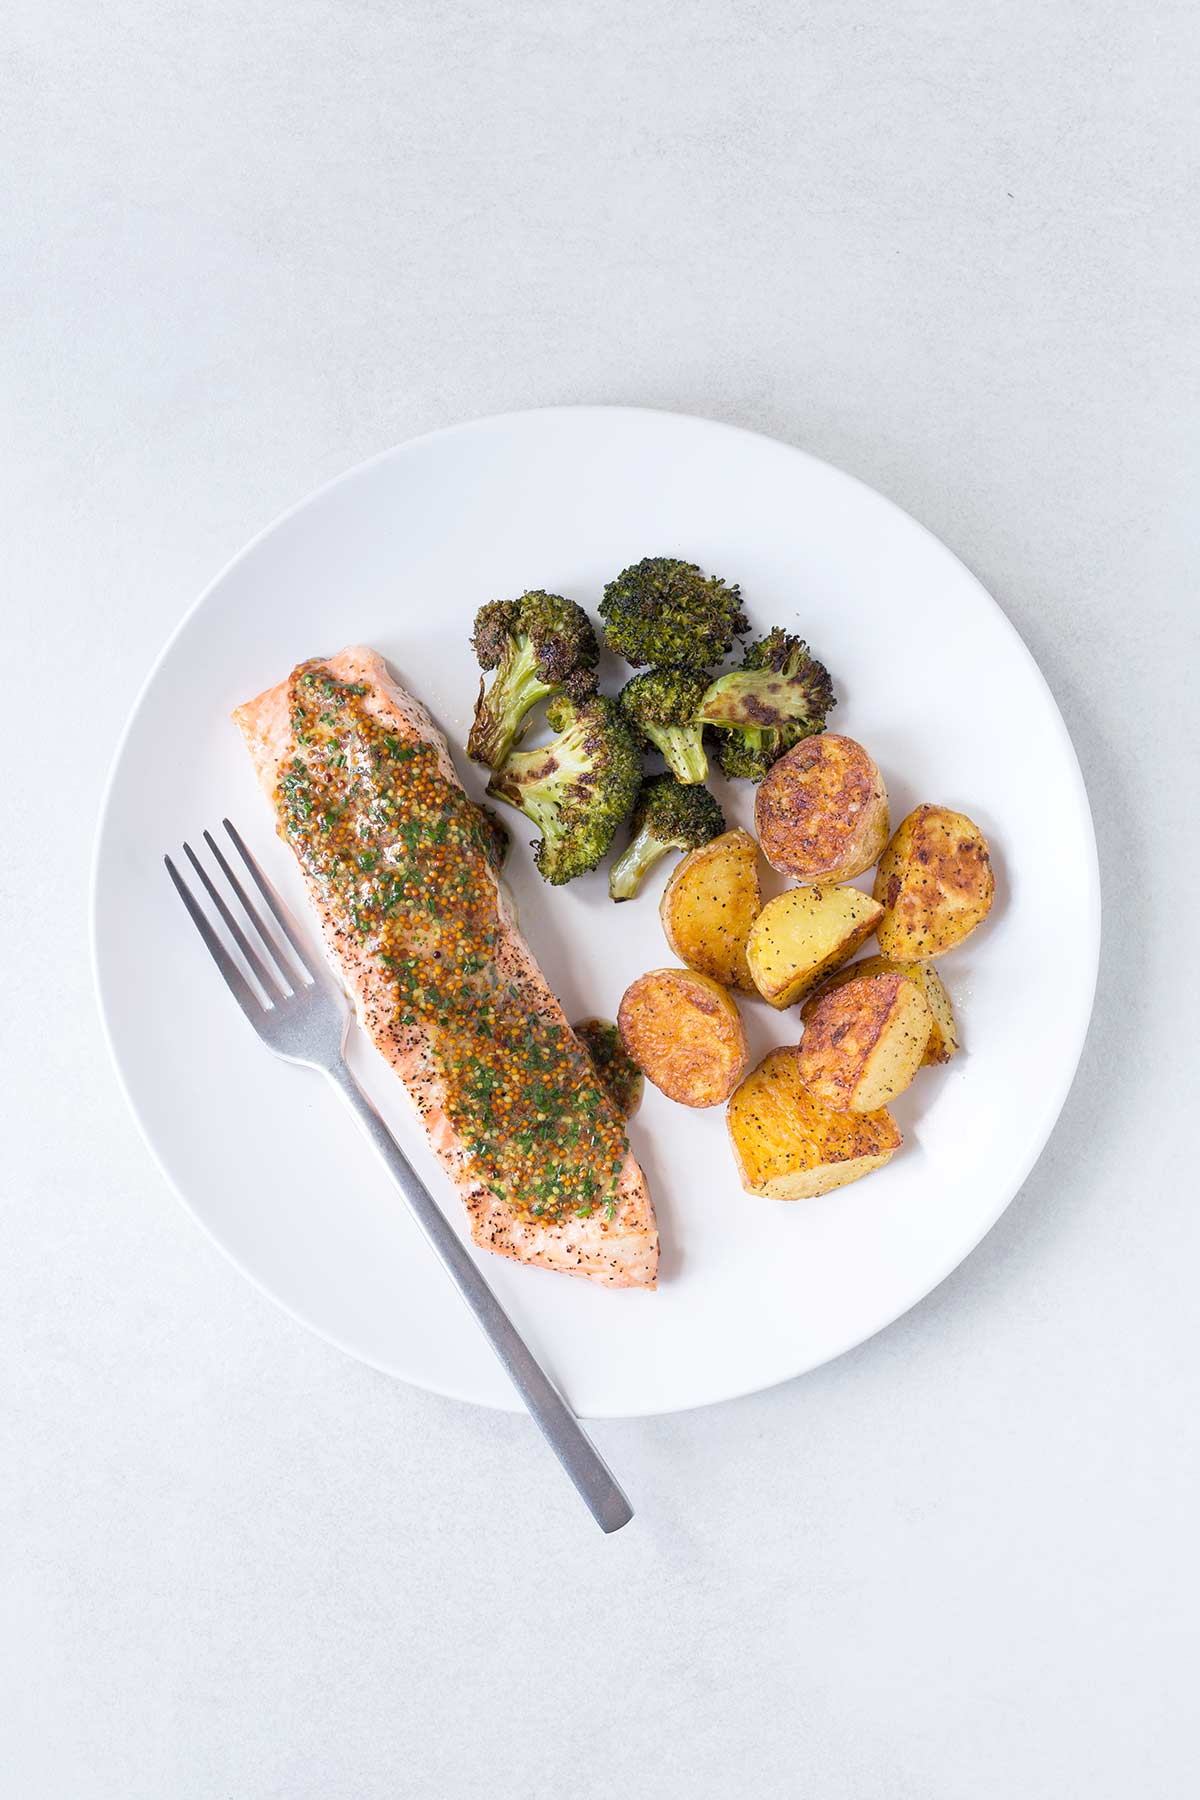 Roasted salmon, potatoes, and broccoli on a white plate with a fork, topped with a sauce.